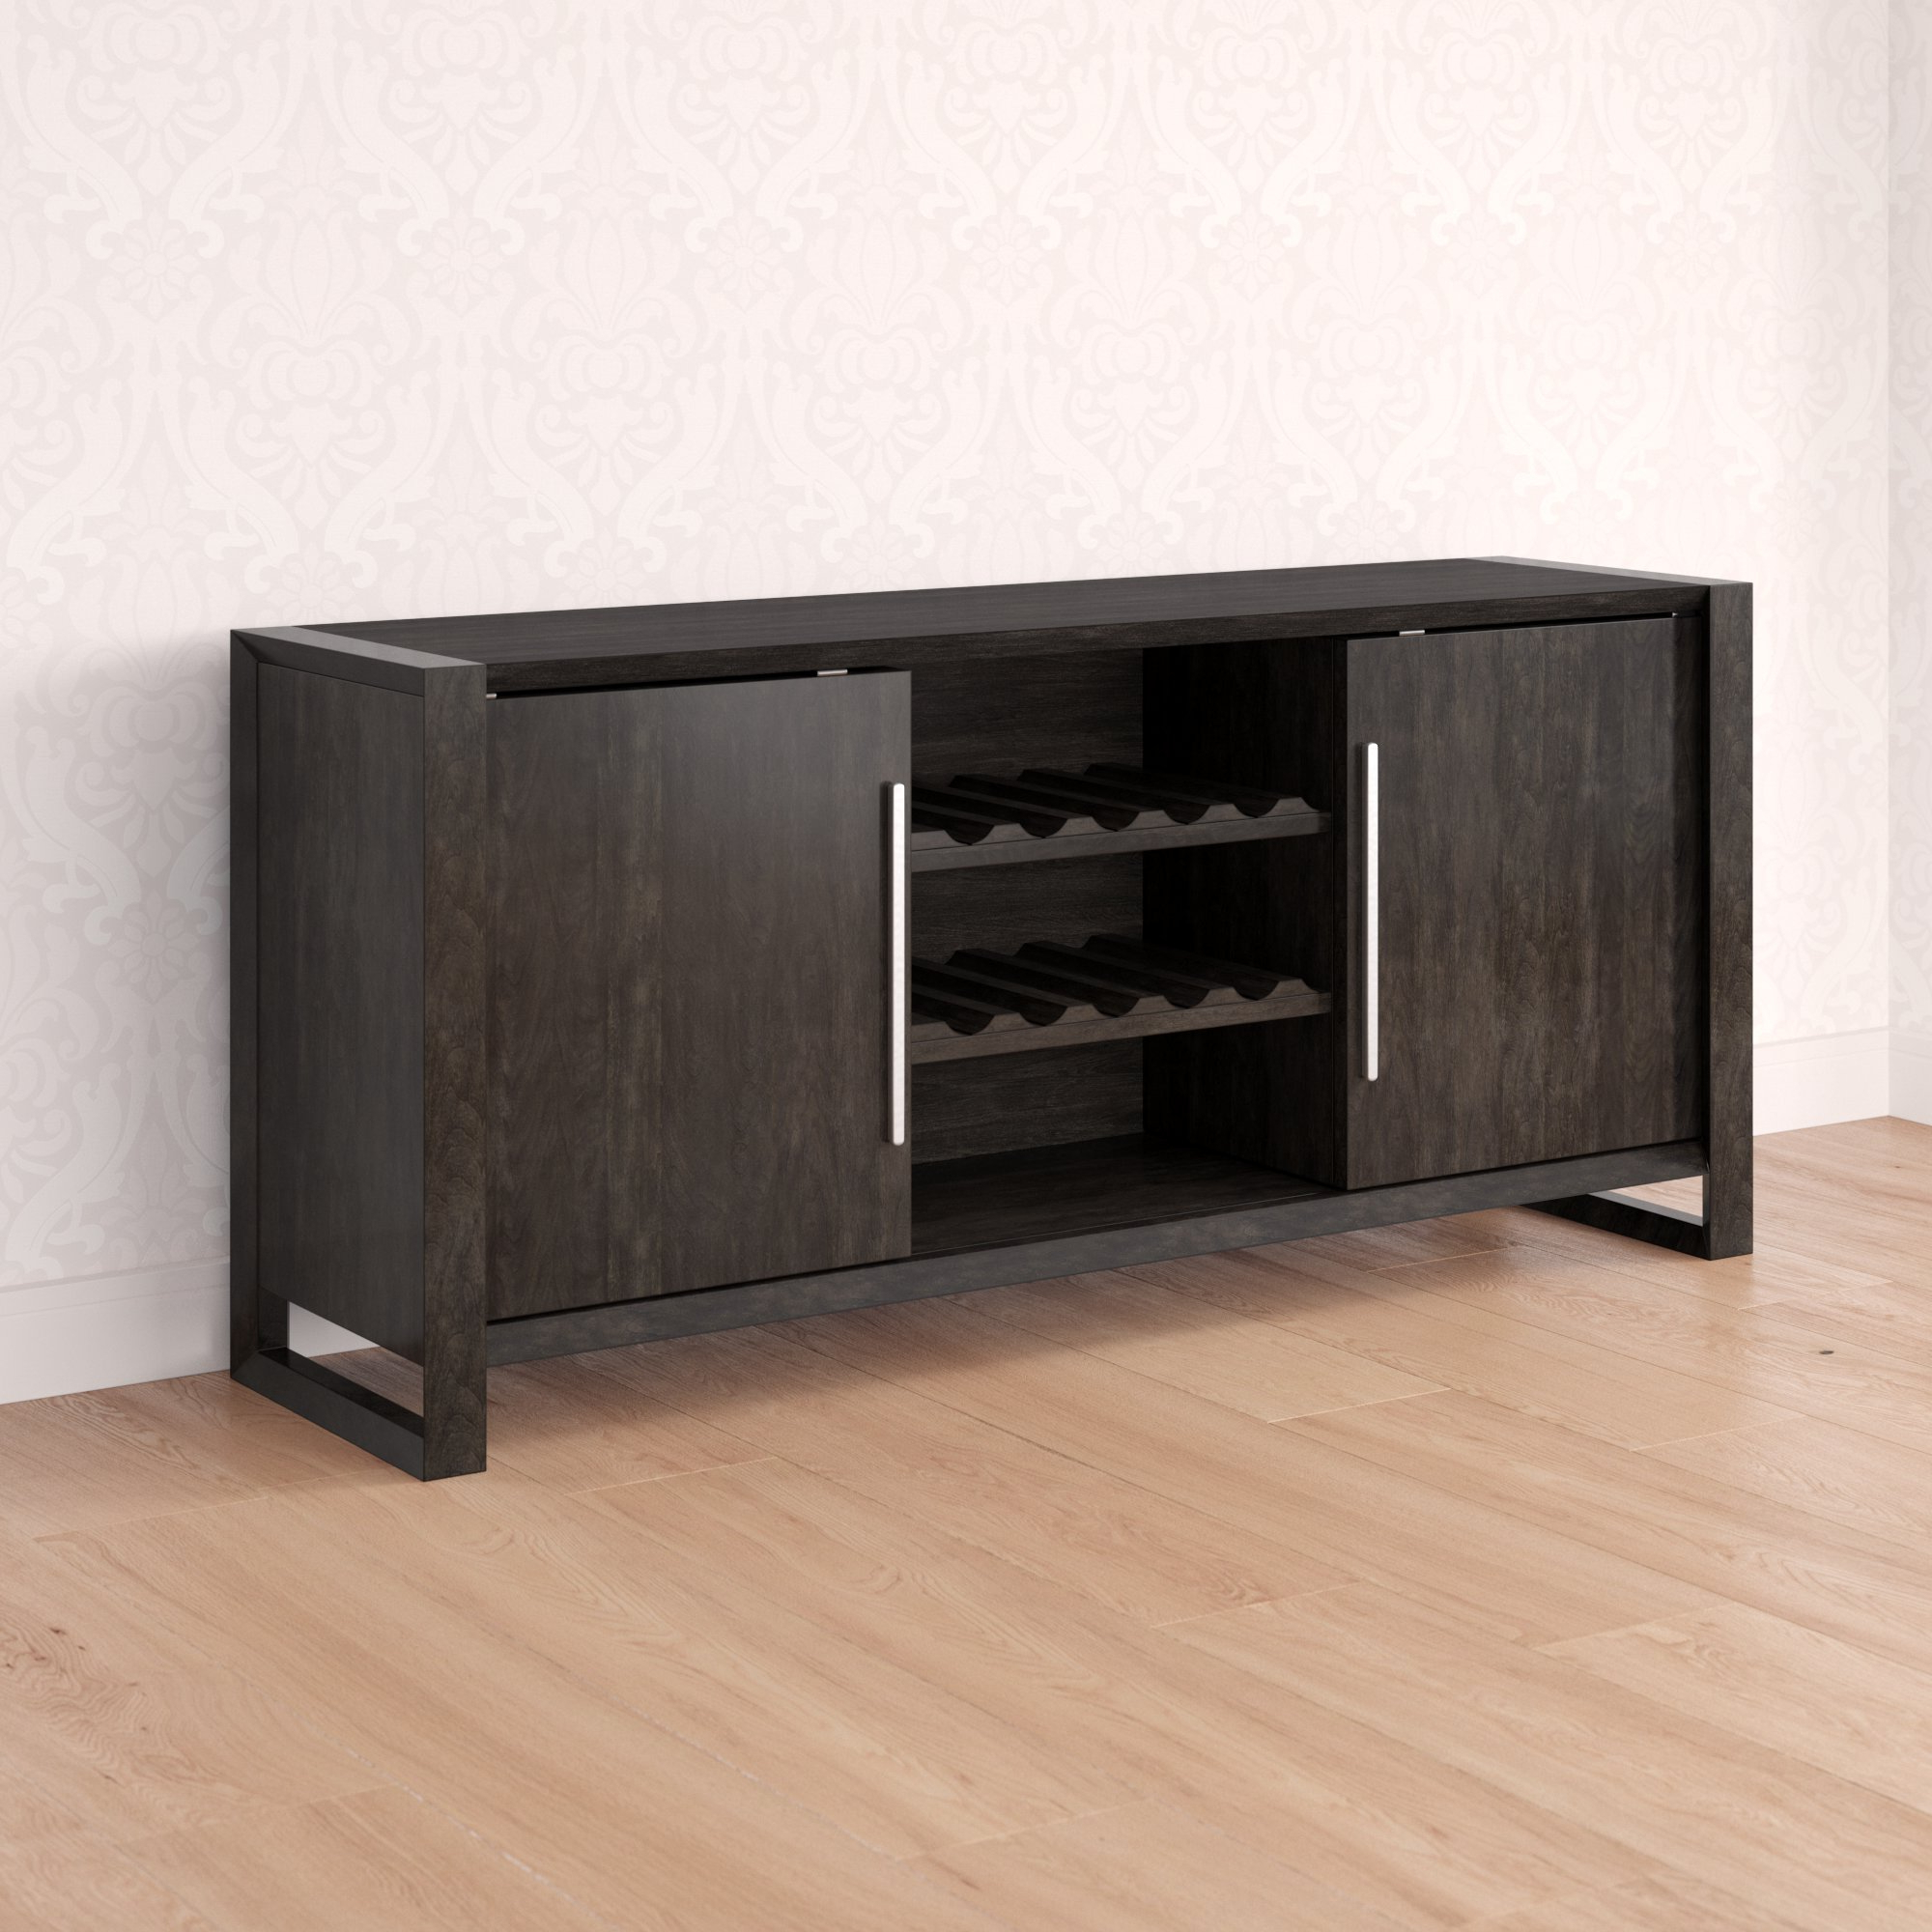 Home Wet Bar Credenza (View 7 of 20)